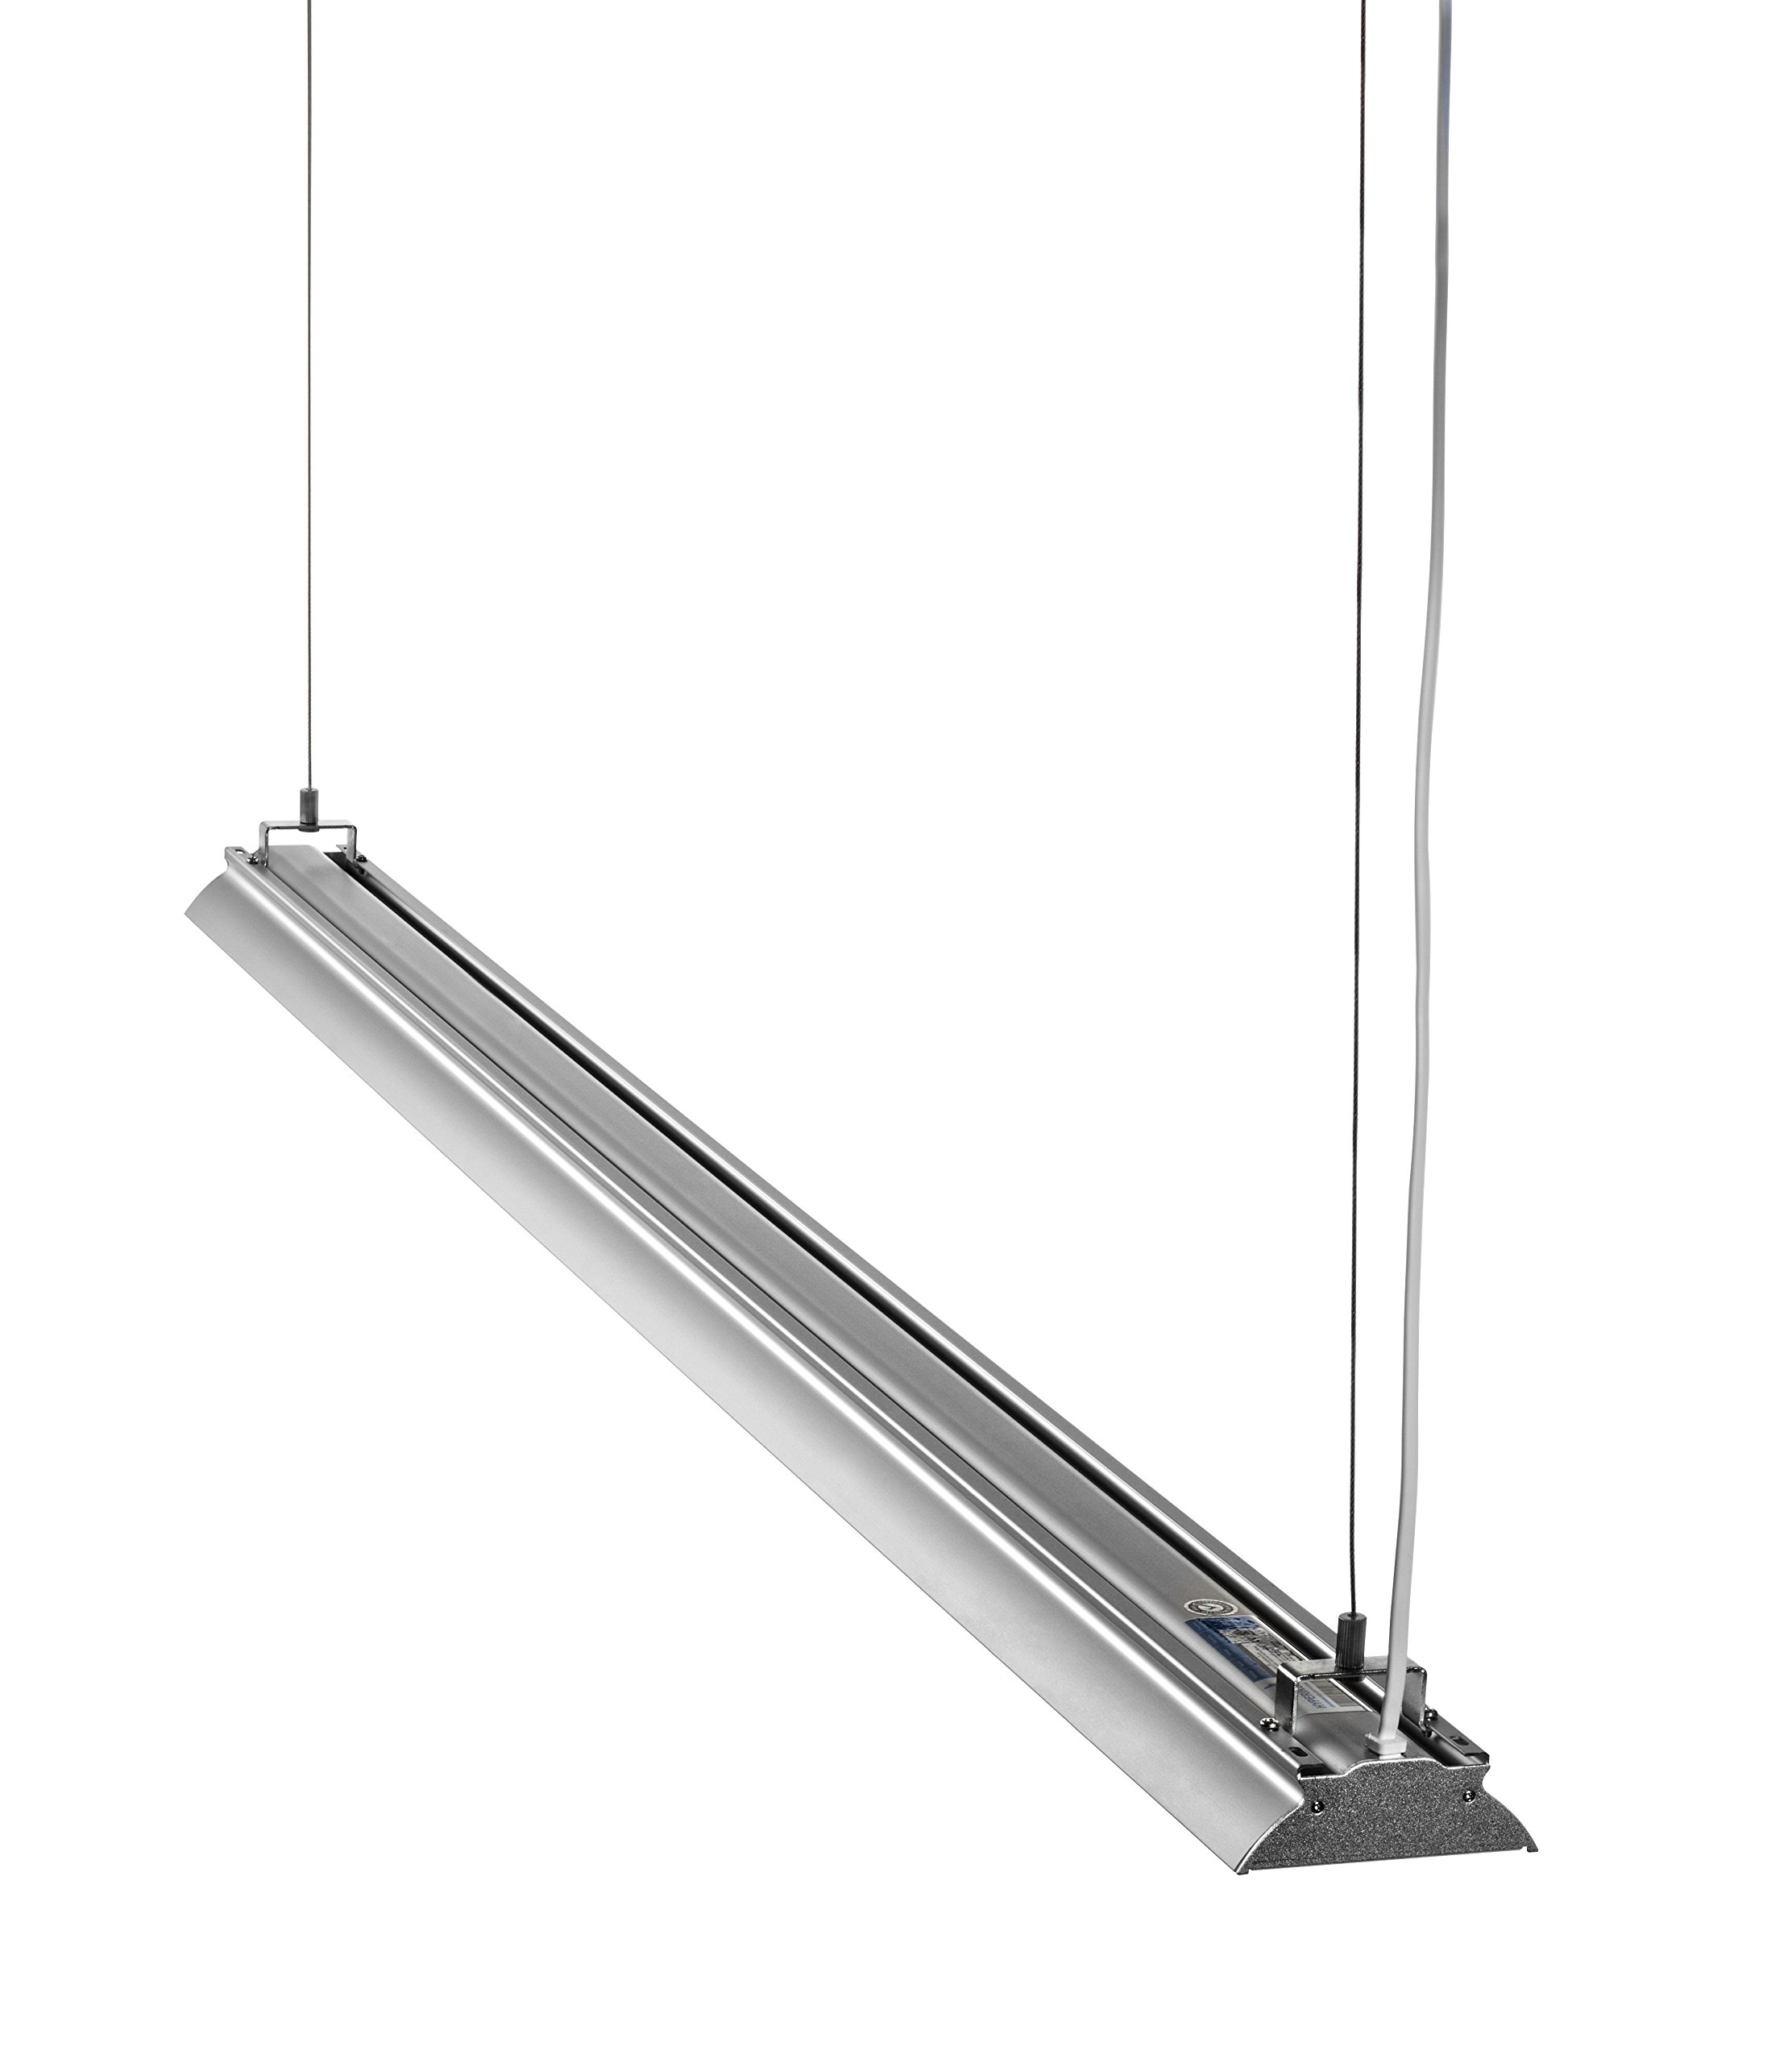 HyperSelect Utility LED Shop Light, 4FT Integrated LED Fixture Garage Light, DLC 4.2 Premium Qualified, 35W (100W Eq.), 3800 Lumens, 4000K (Daylight Glow), Frosted Cover, Corded-electric by Hyperikon (Image #9)